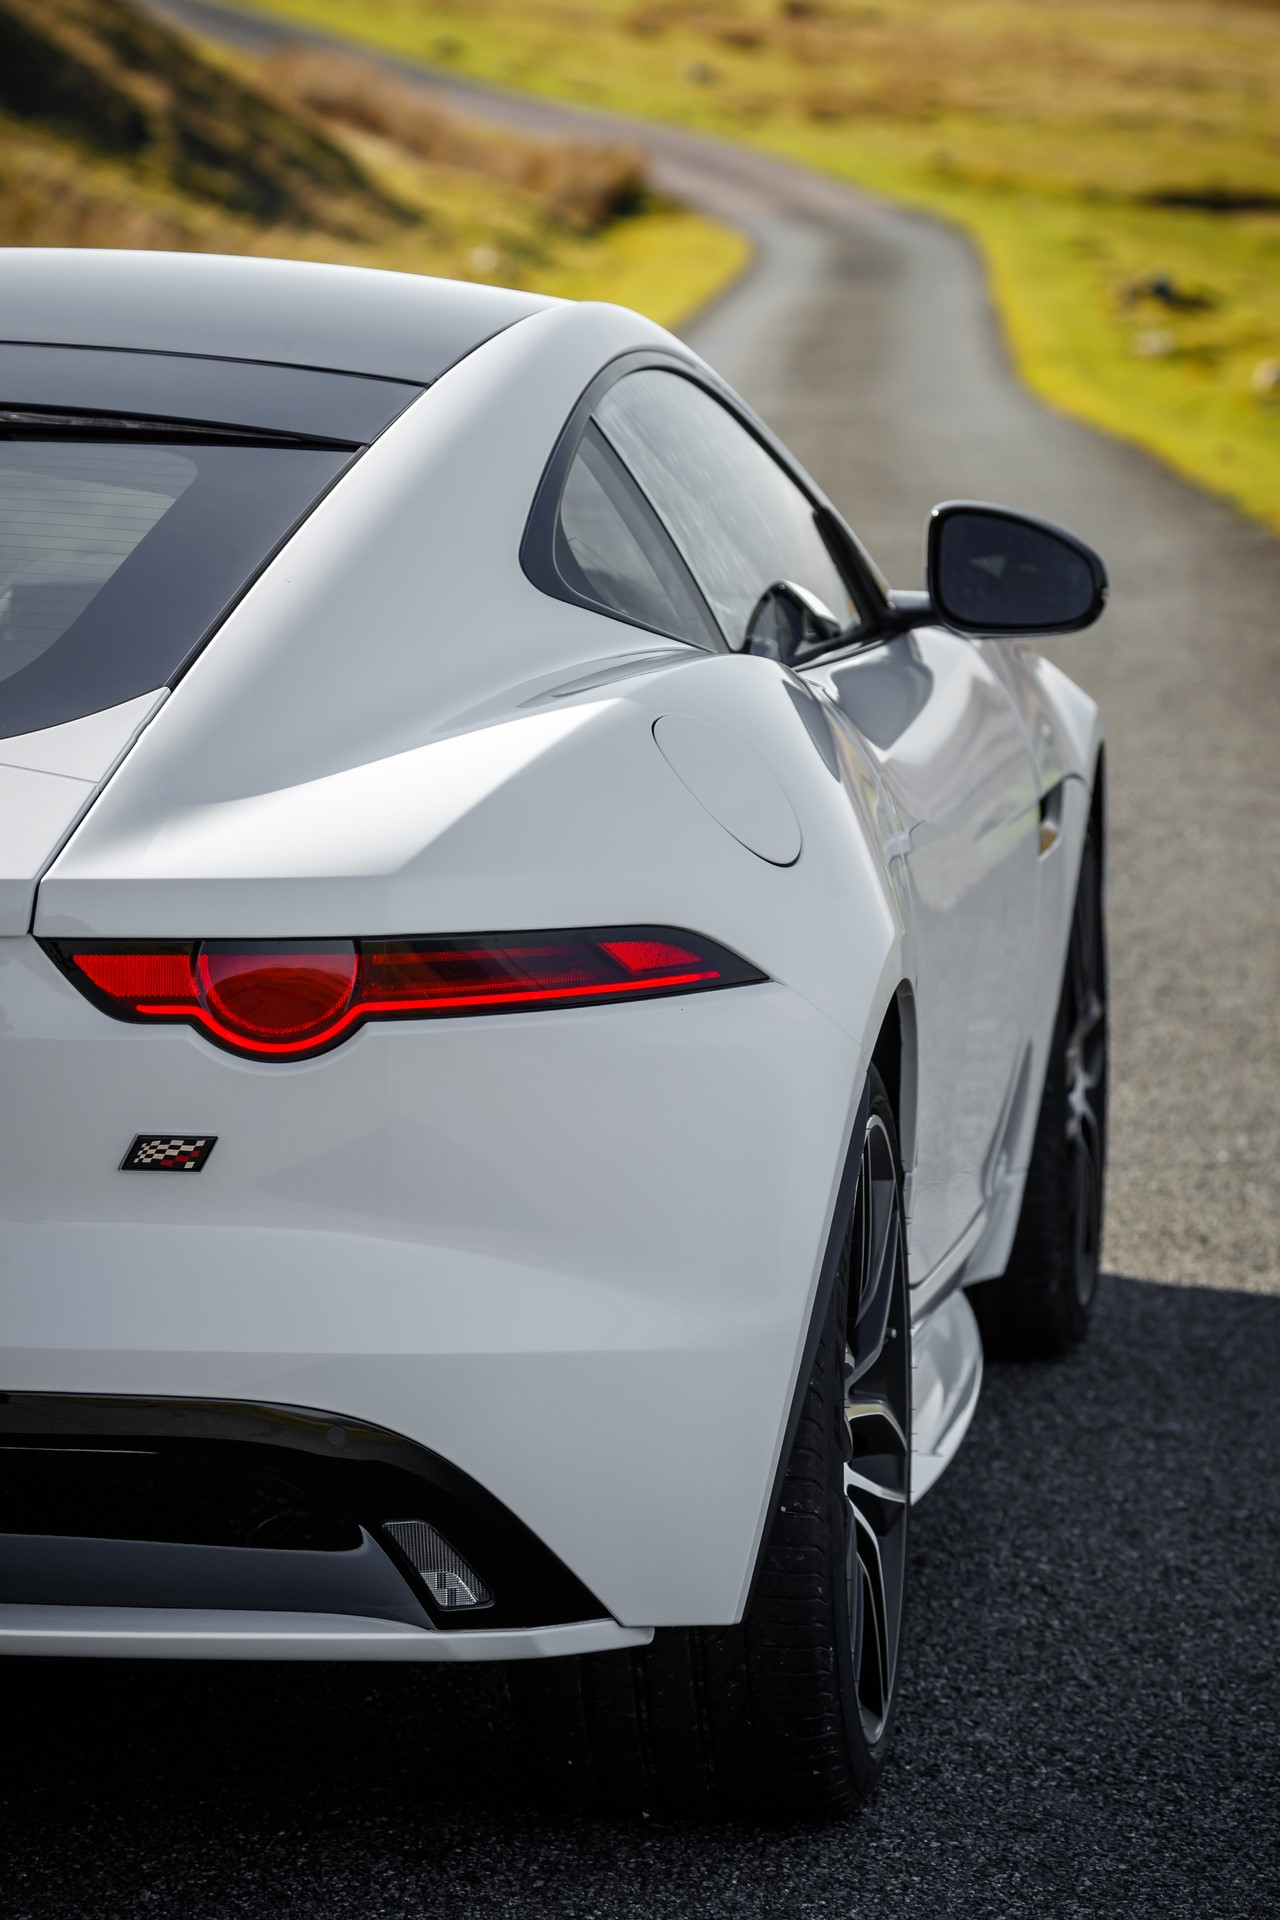 Jaguar F-Type Checkered Flag Limited Edition (12)